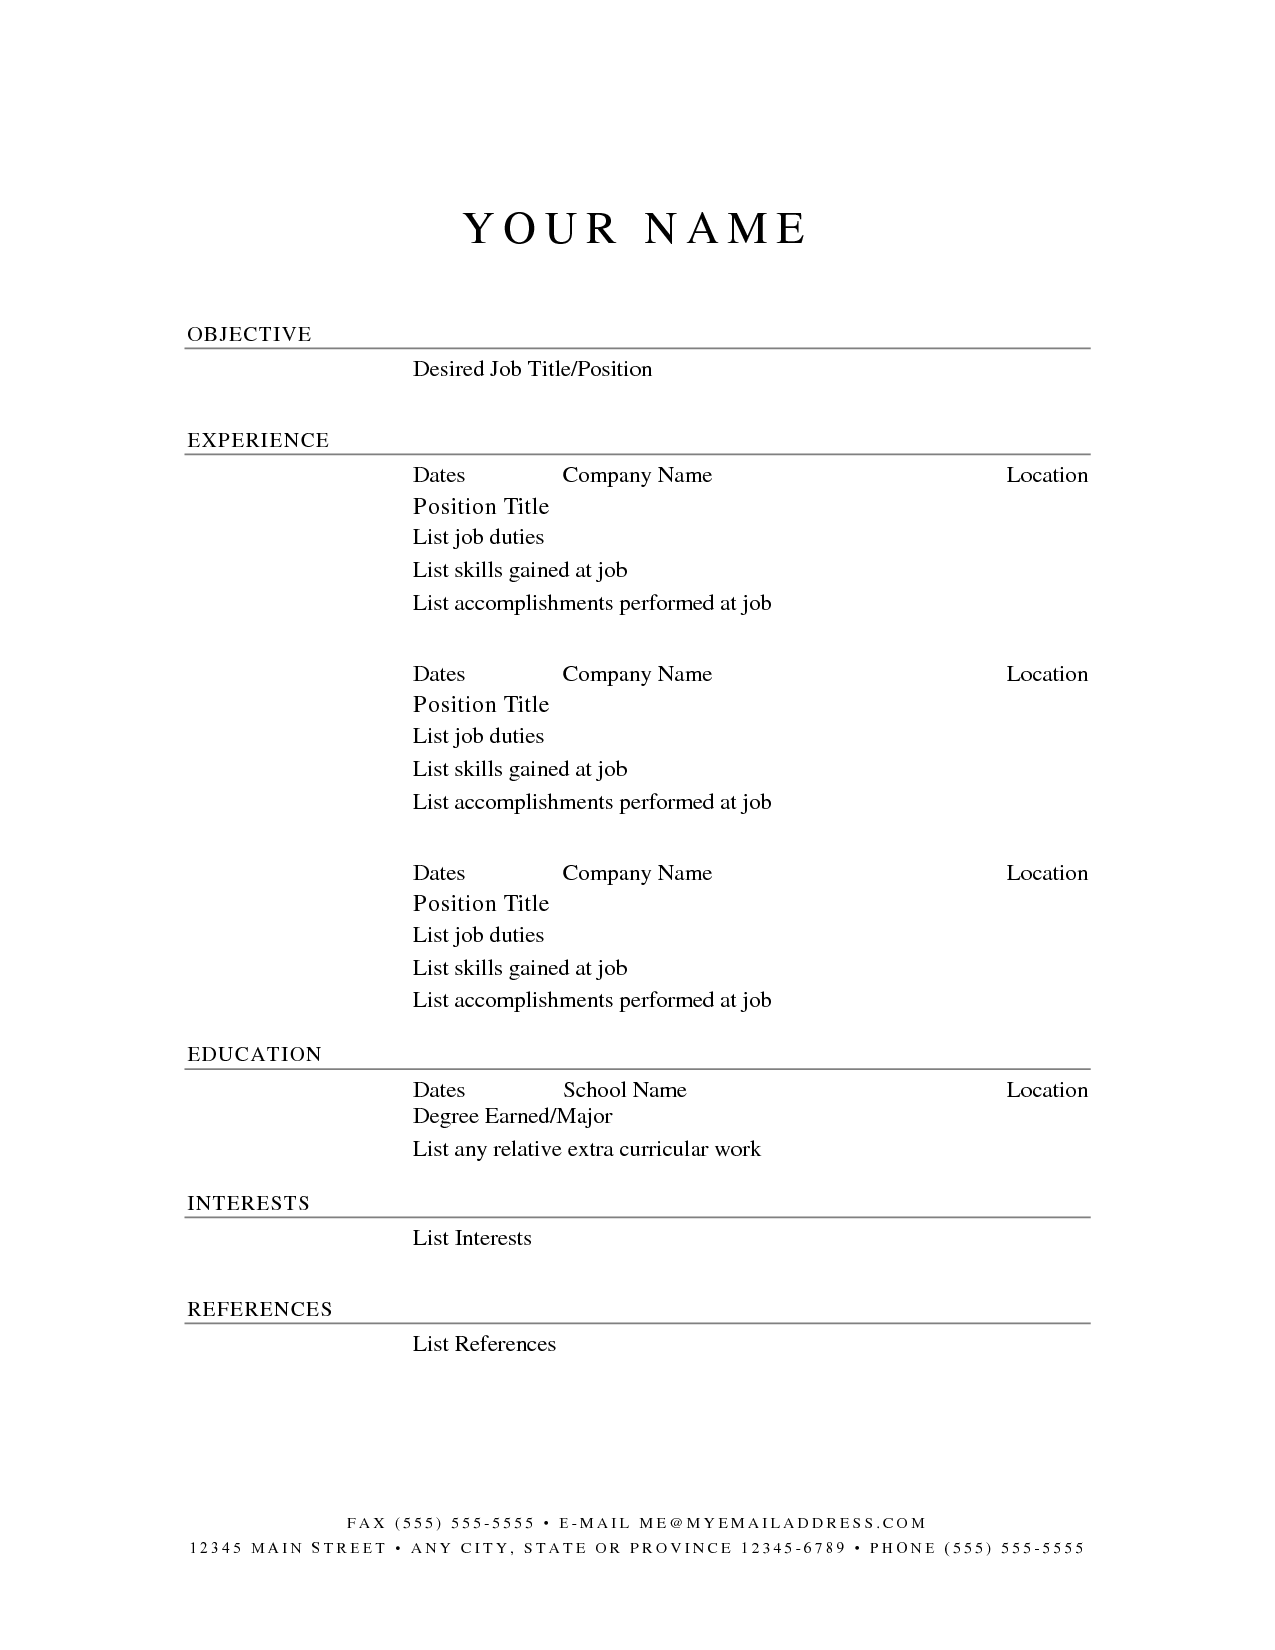 Printable resume templates free printable resume for Free resume layout templates